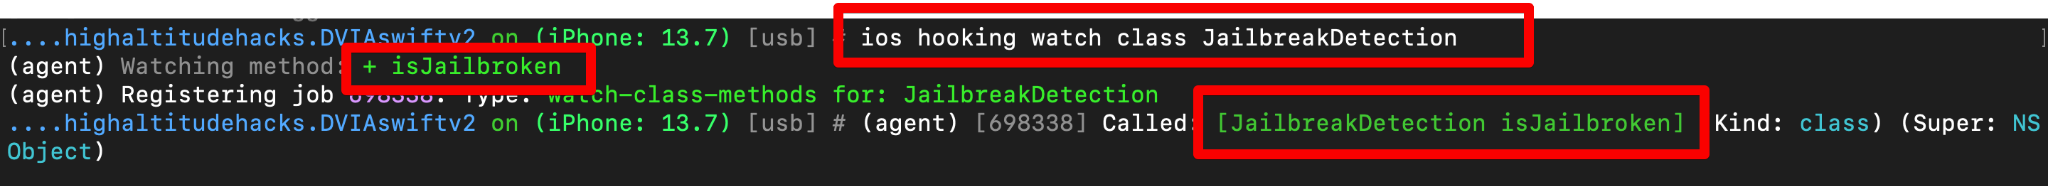 ios hooking watch class JailbreakDetection